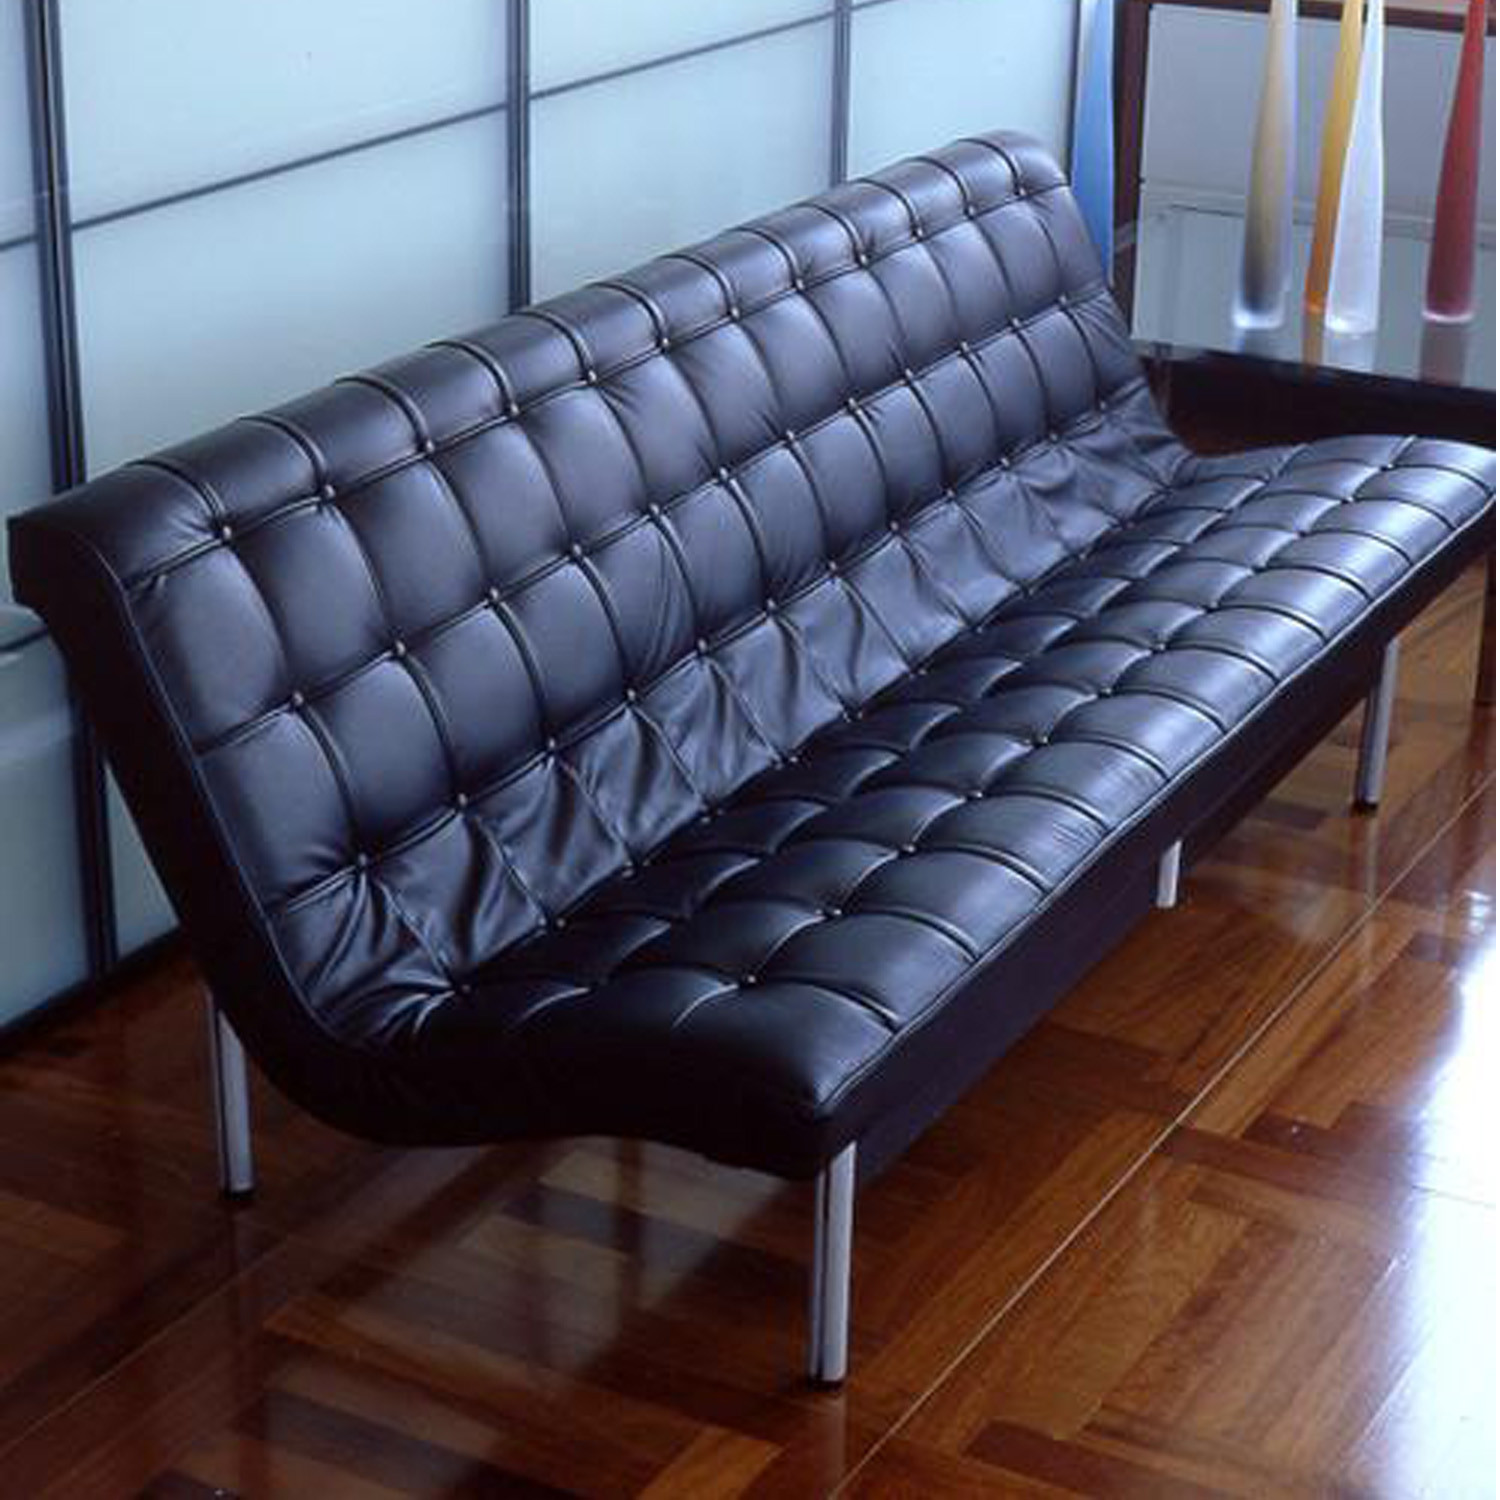 New York Leather Sofa by ICF Spa